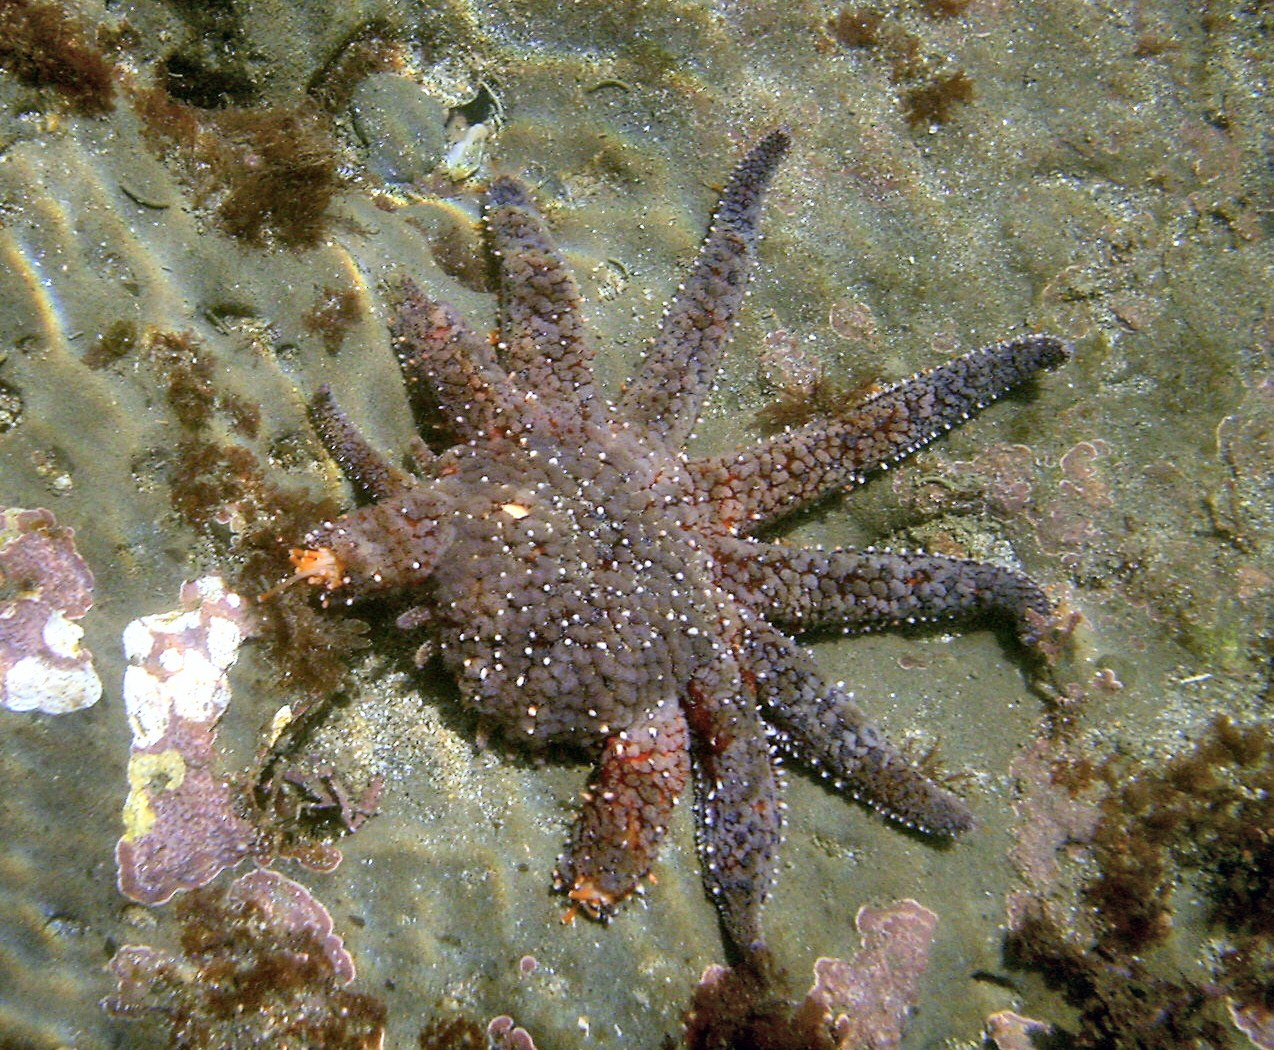 File:Sea star regenerating legs.jpg - Wikipedia, the free encyclopedia